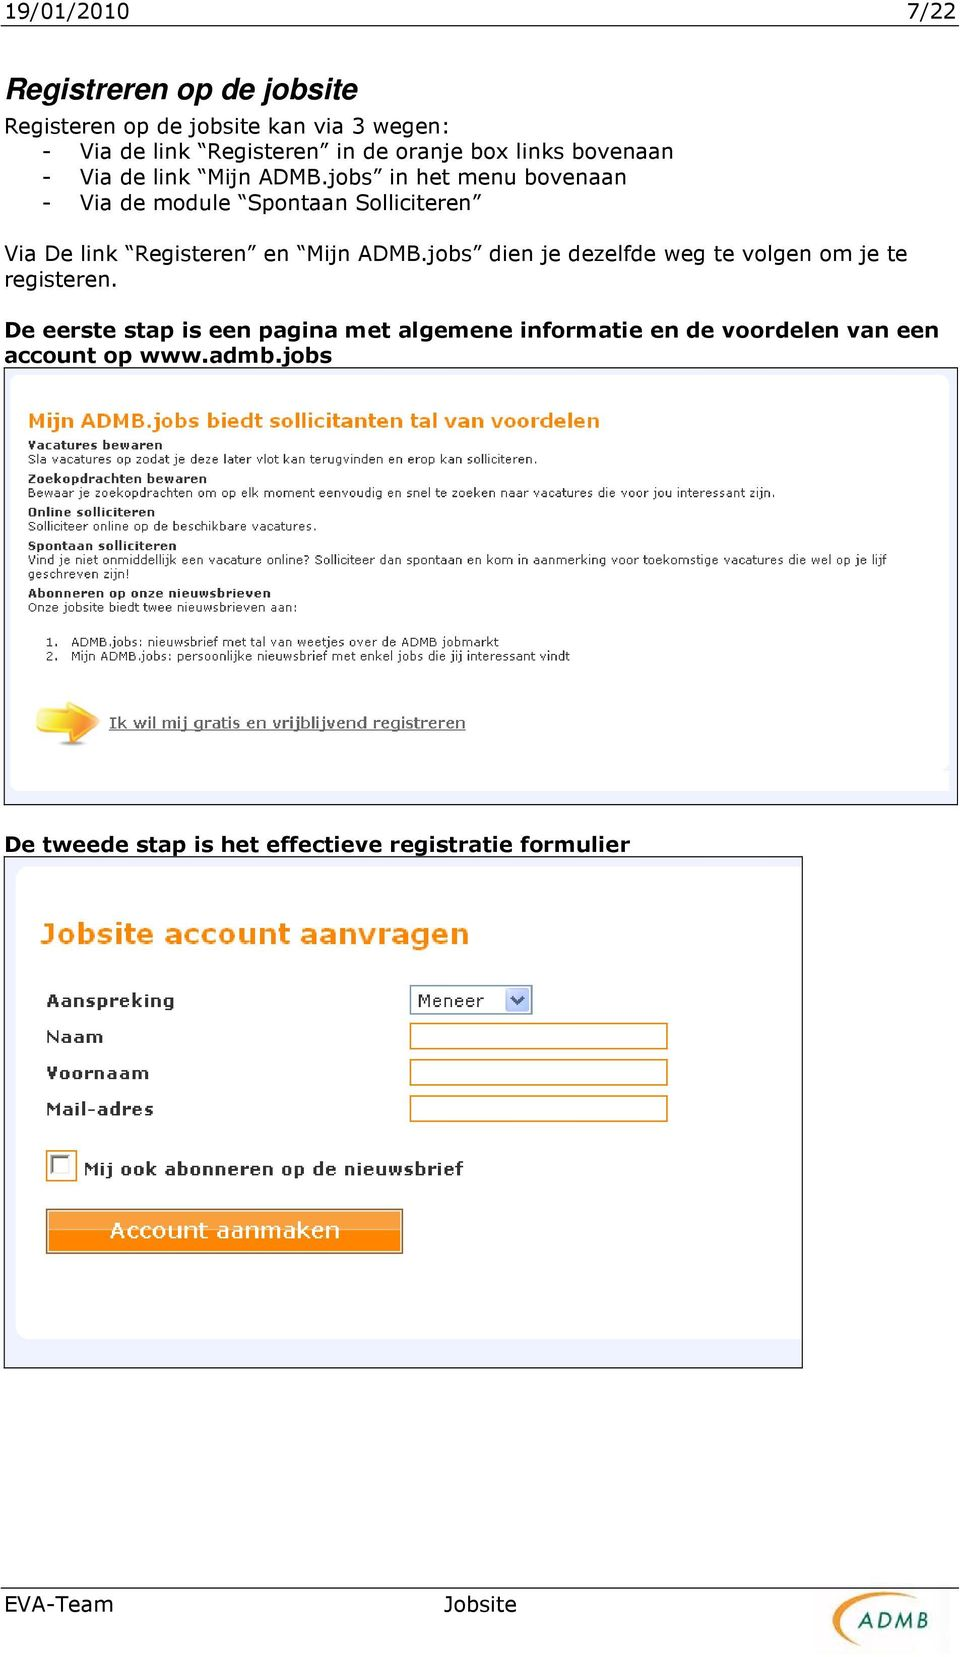 jobs in het menu bovenaan - Via de module Spontaan Solliciteren Via De link Registeren en Mijn ADMB.